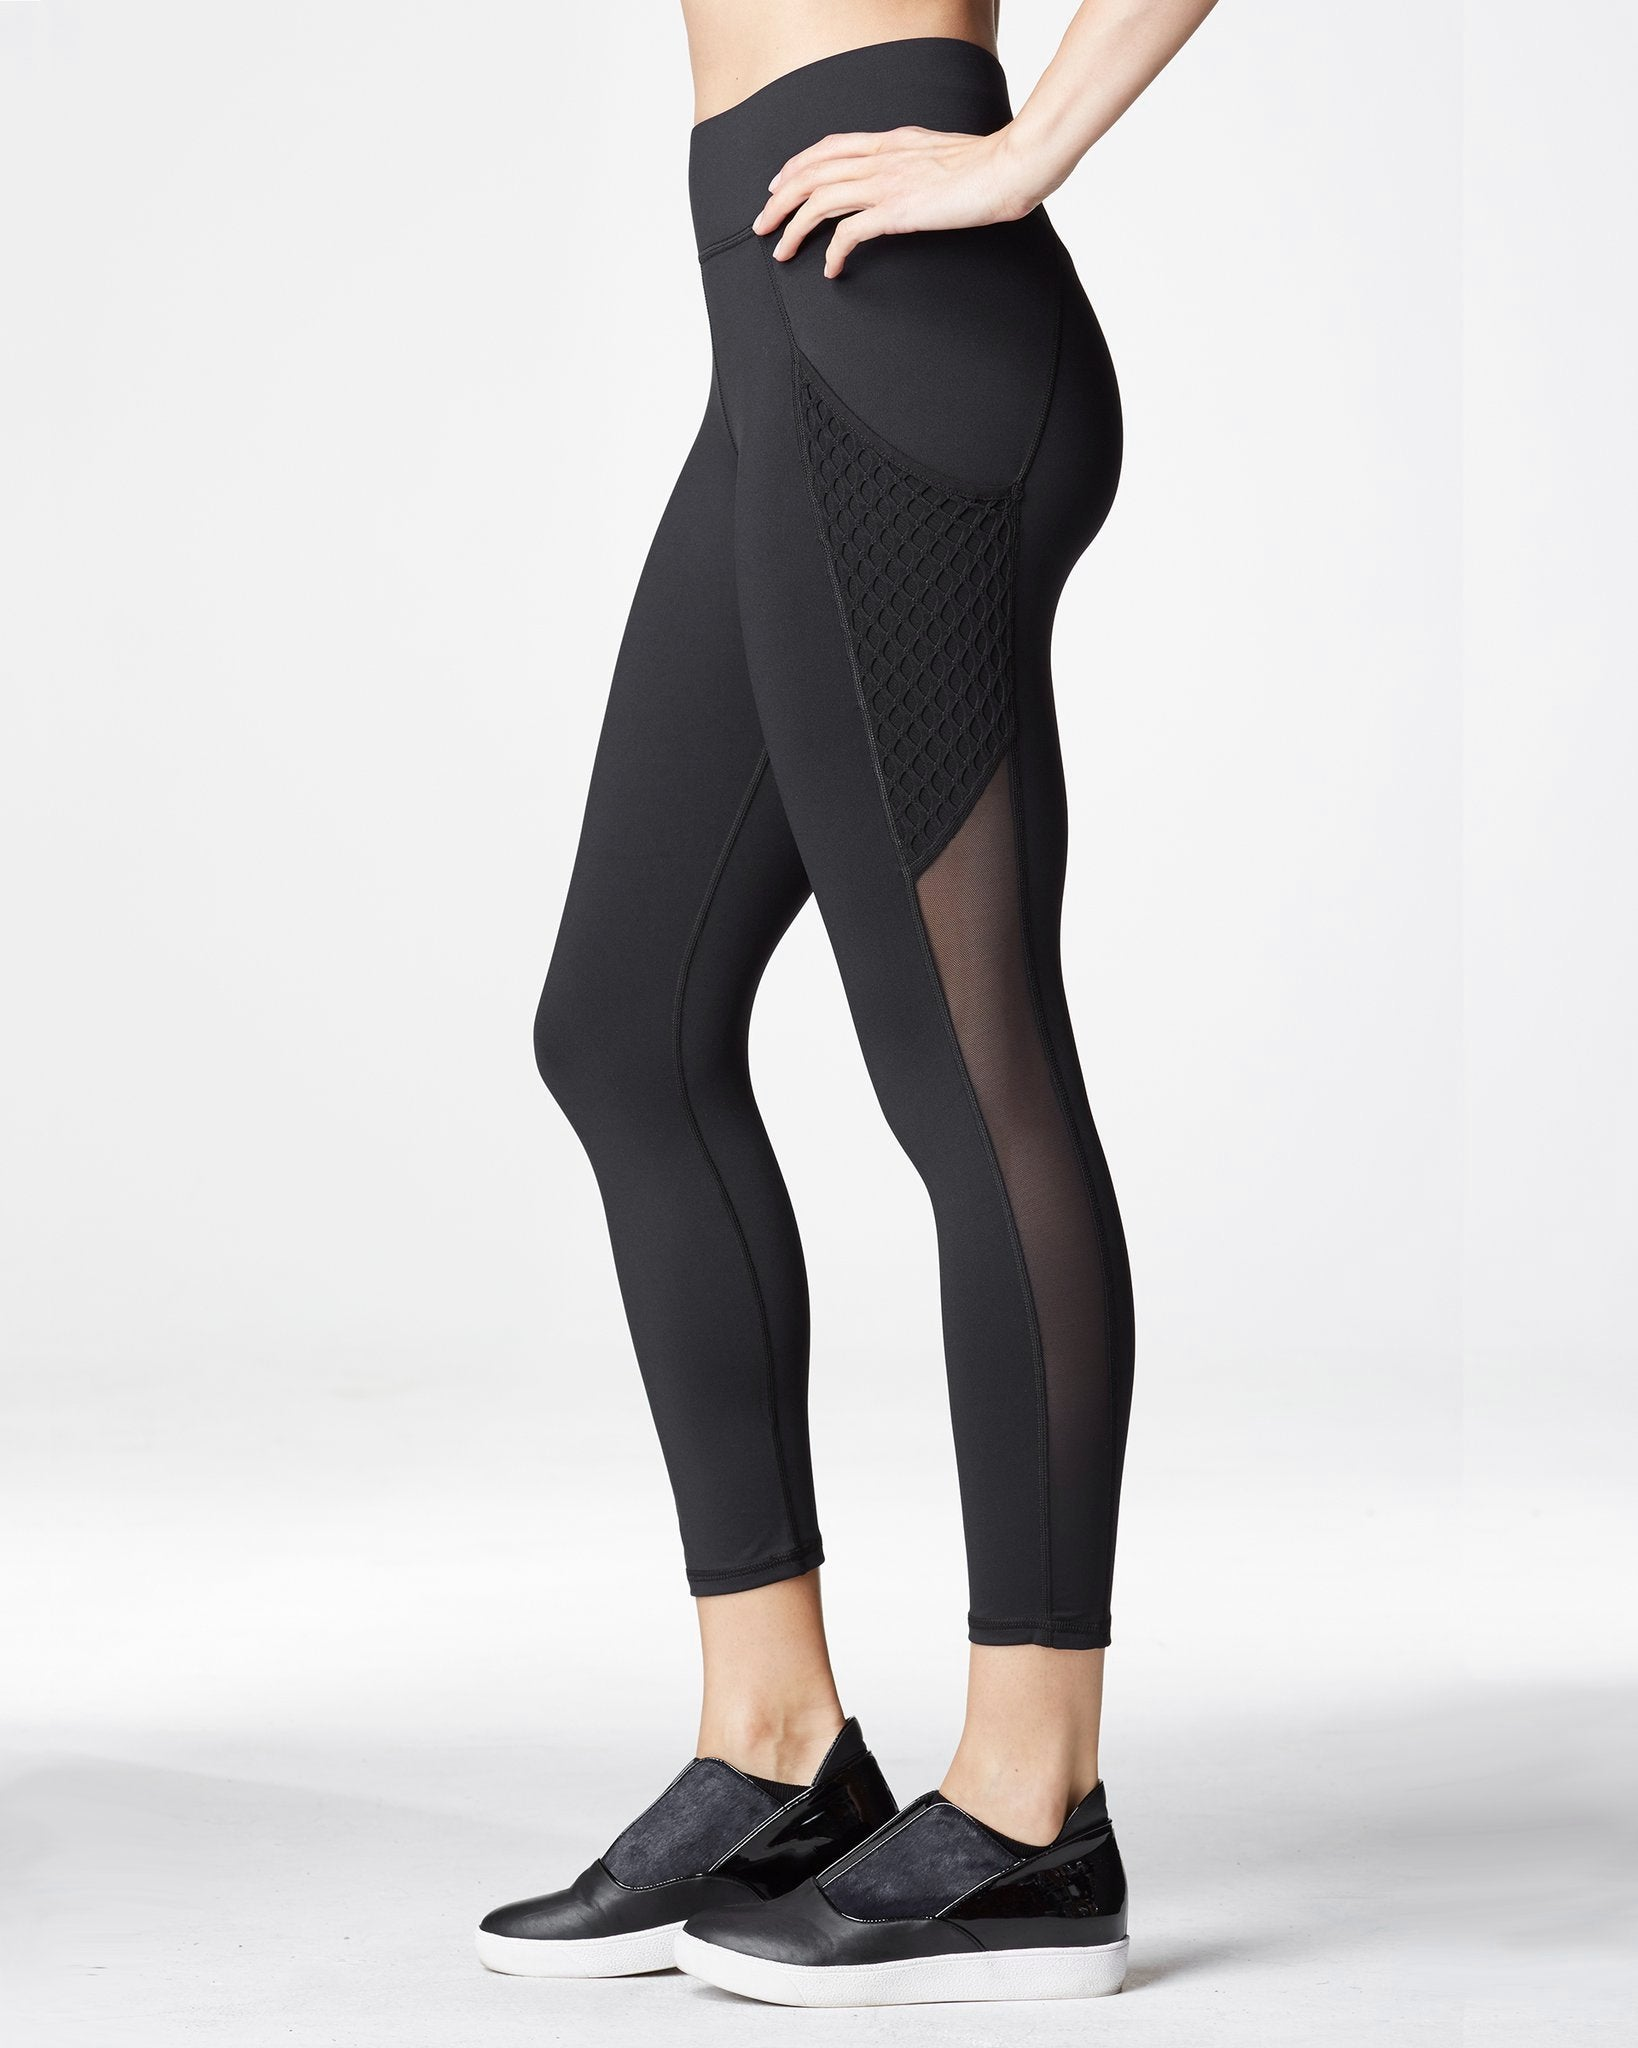 Stardust Crop Legging w/ Pocket - Black